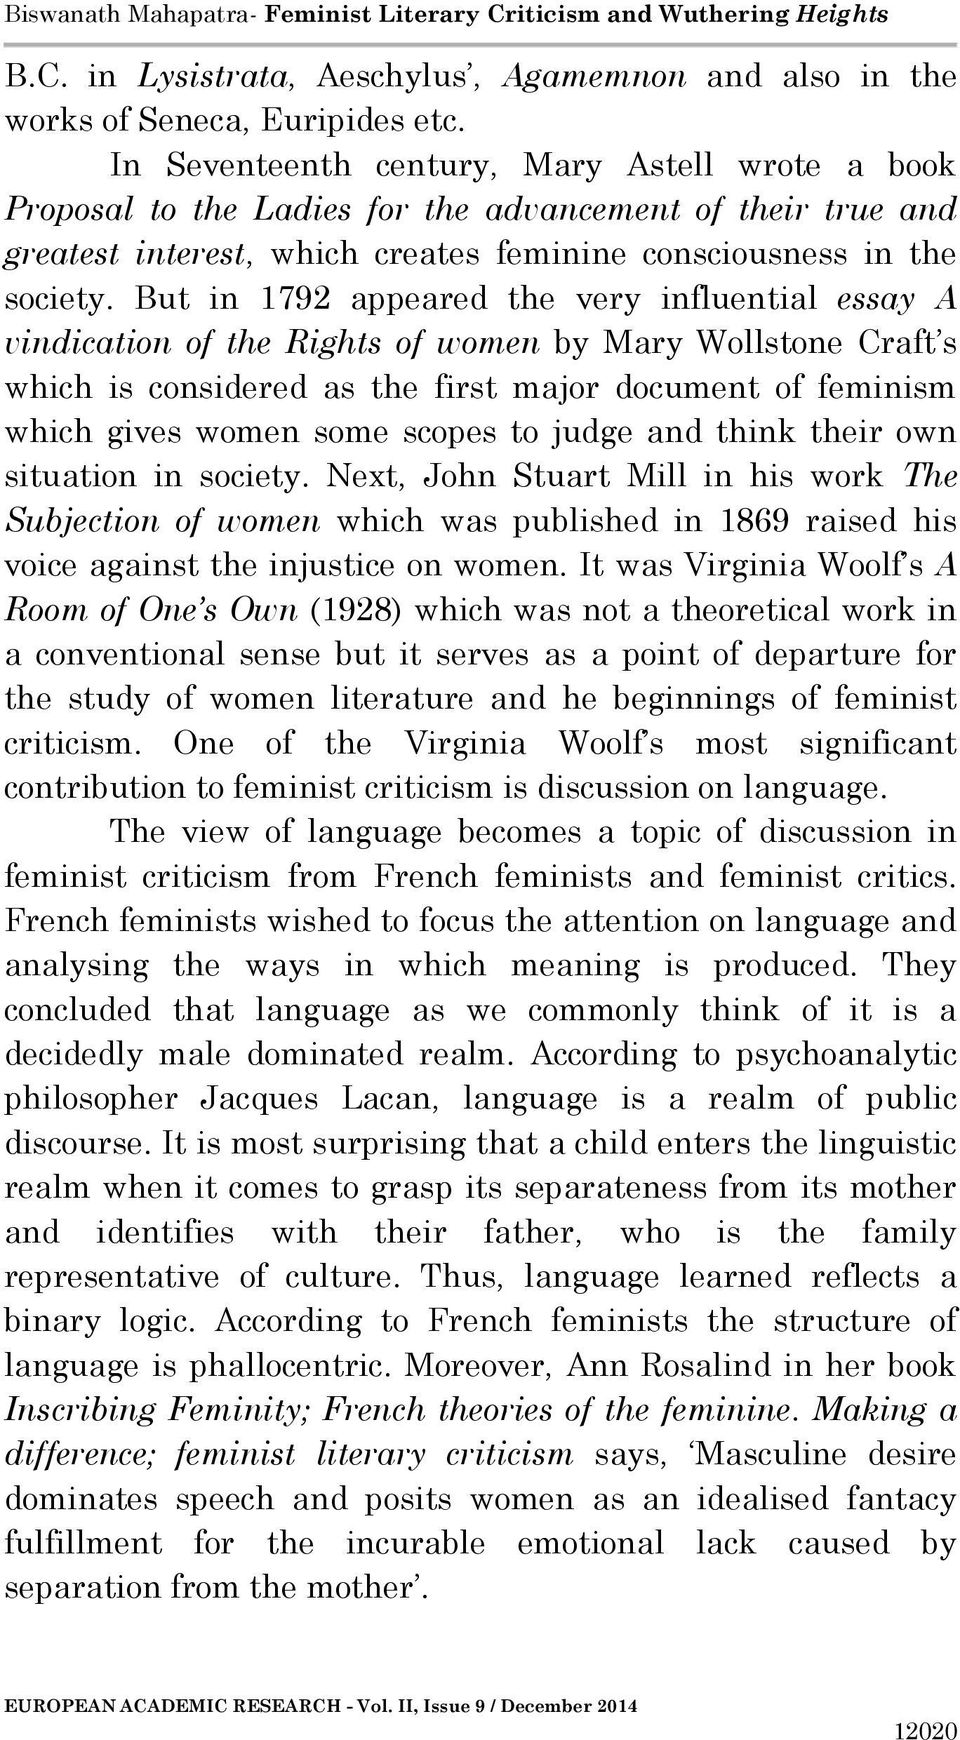 women studies essay 1 The journal of international women's studies is an on-line, open-access, peer reviewed feminist journal that provides a forum for scholars, activists, and students to explore the relationships among theories of gender and sexuality and various forms of organizing and critical practice.